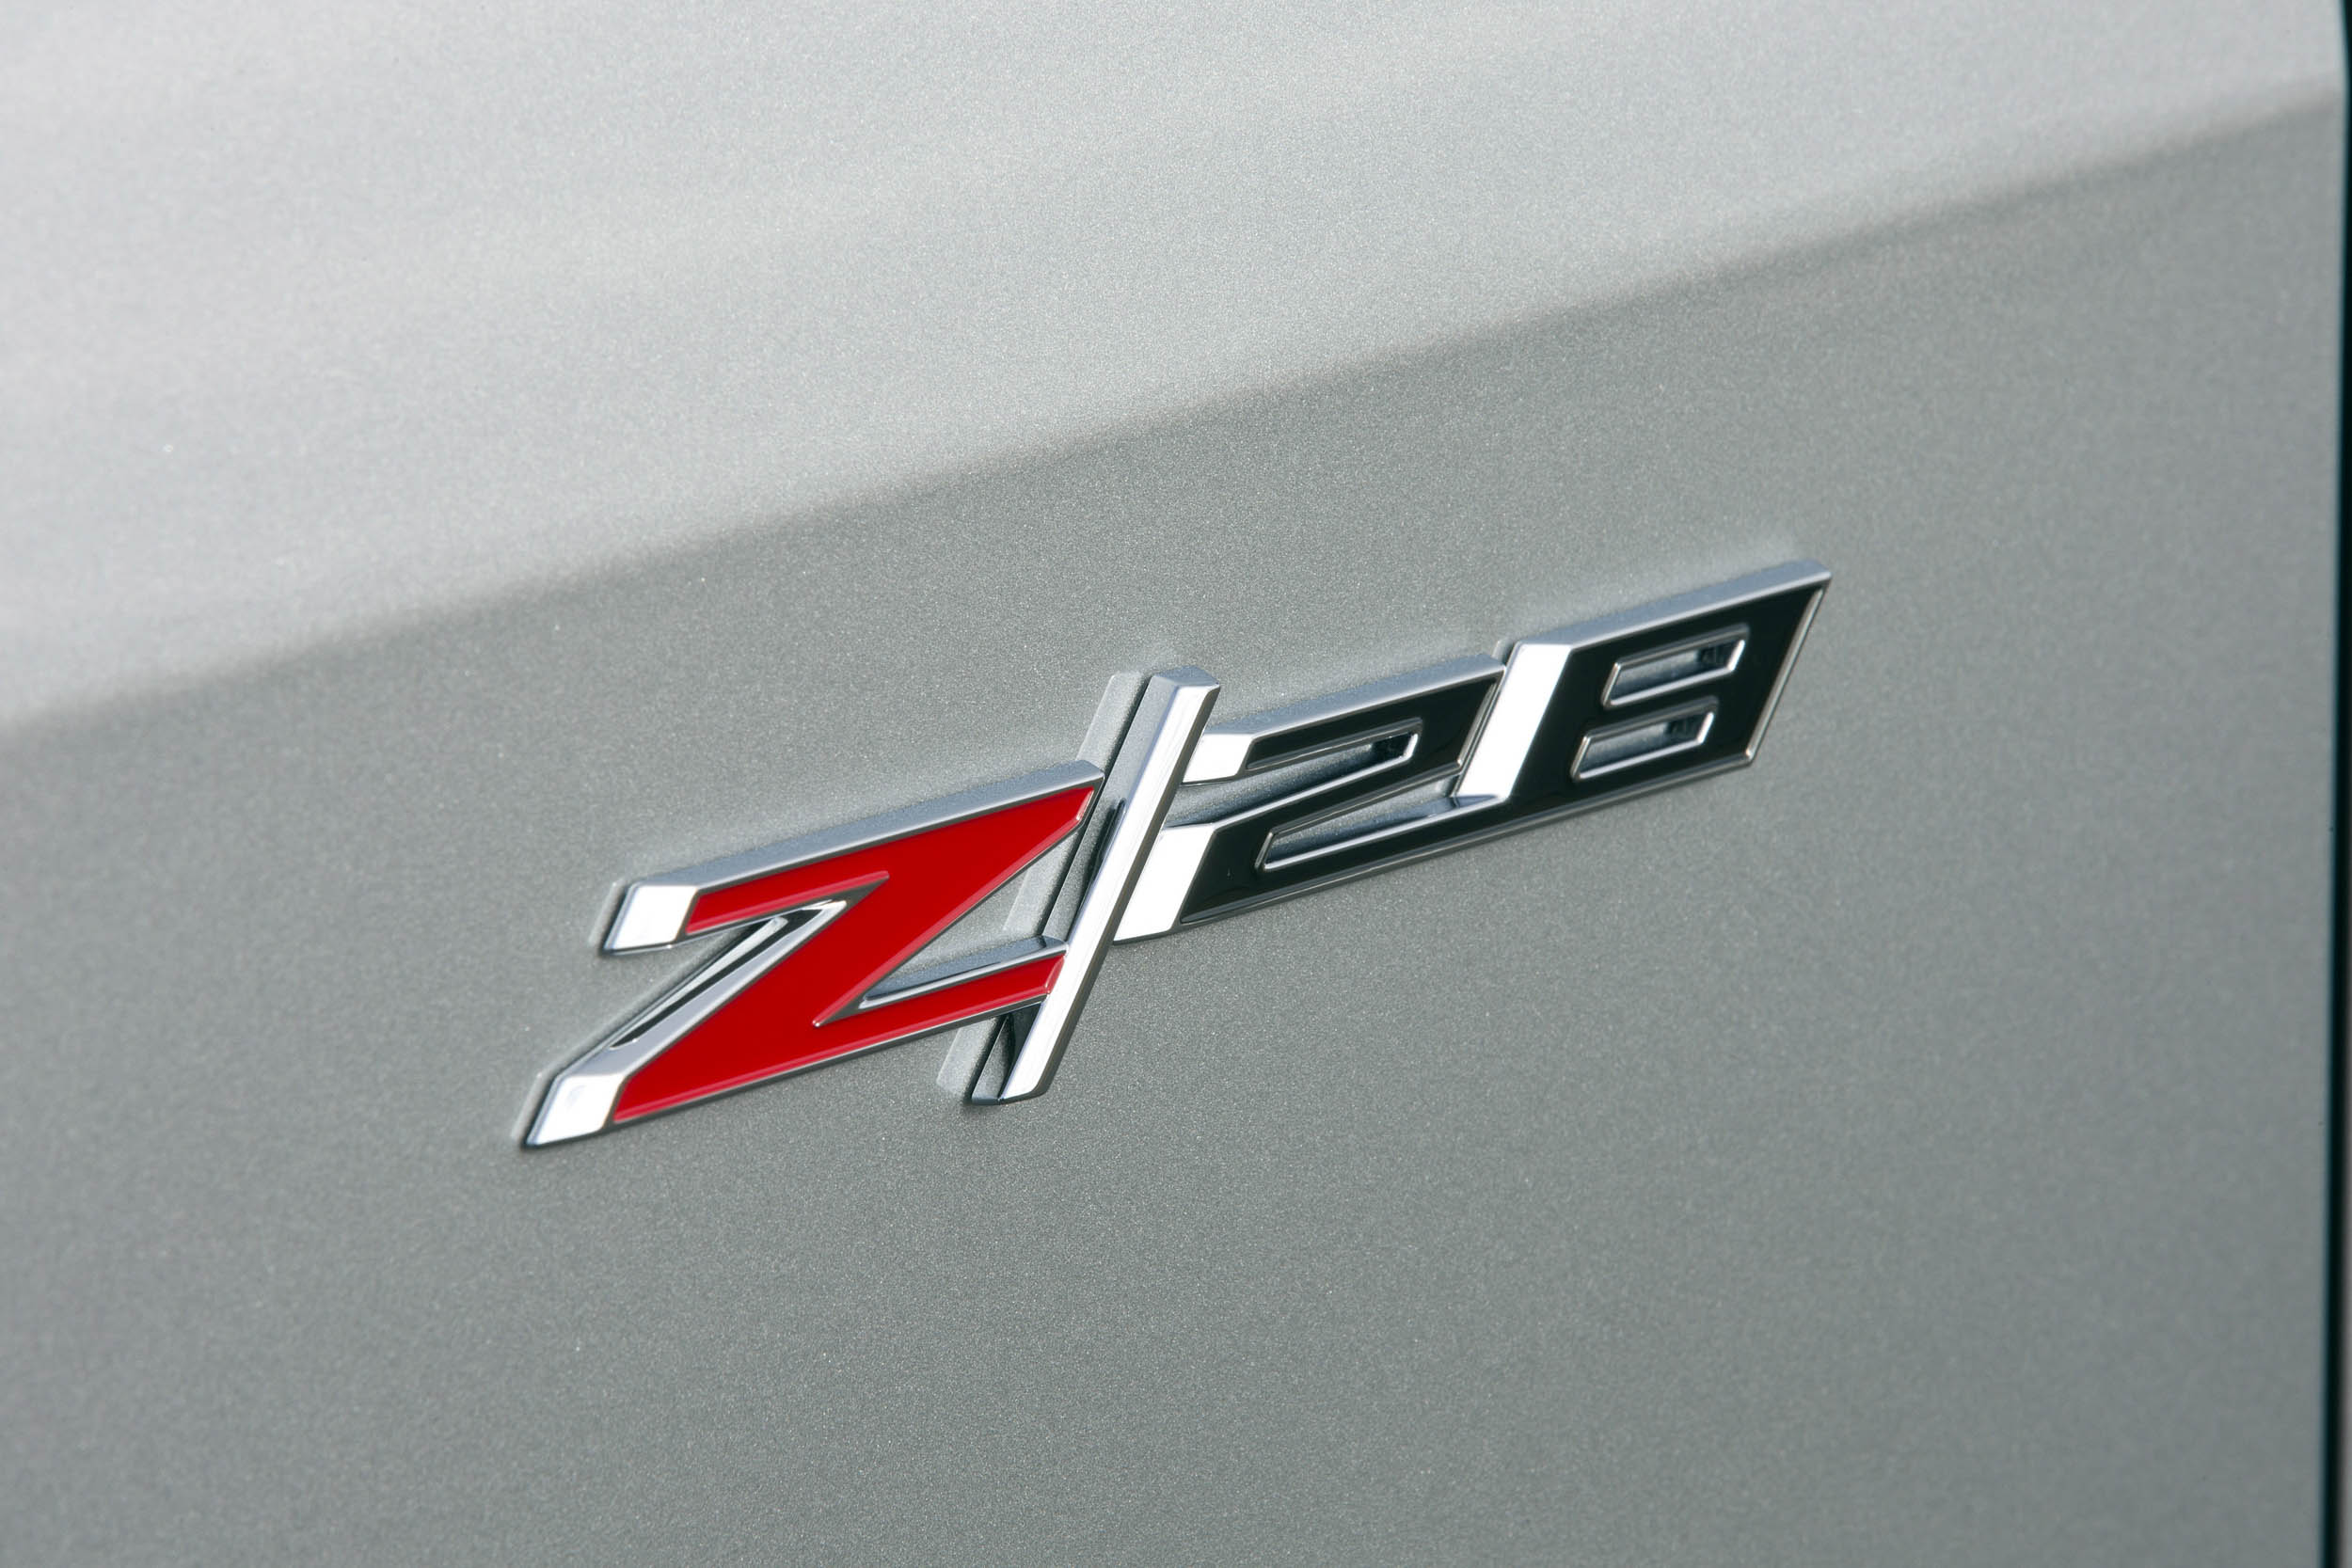 2015 Chevrolet Camaro Z/28 badge